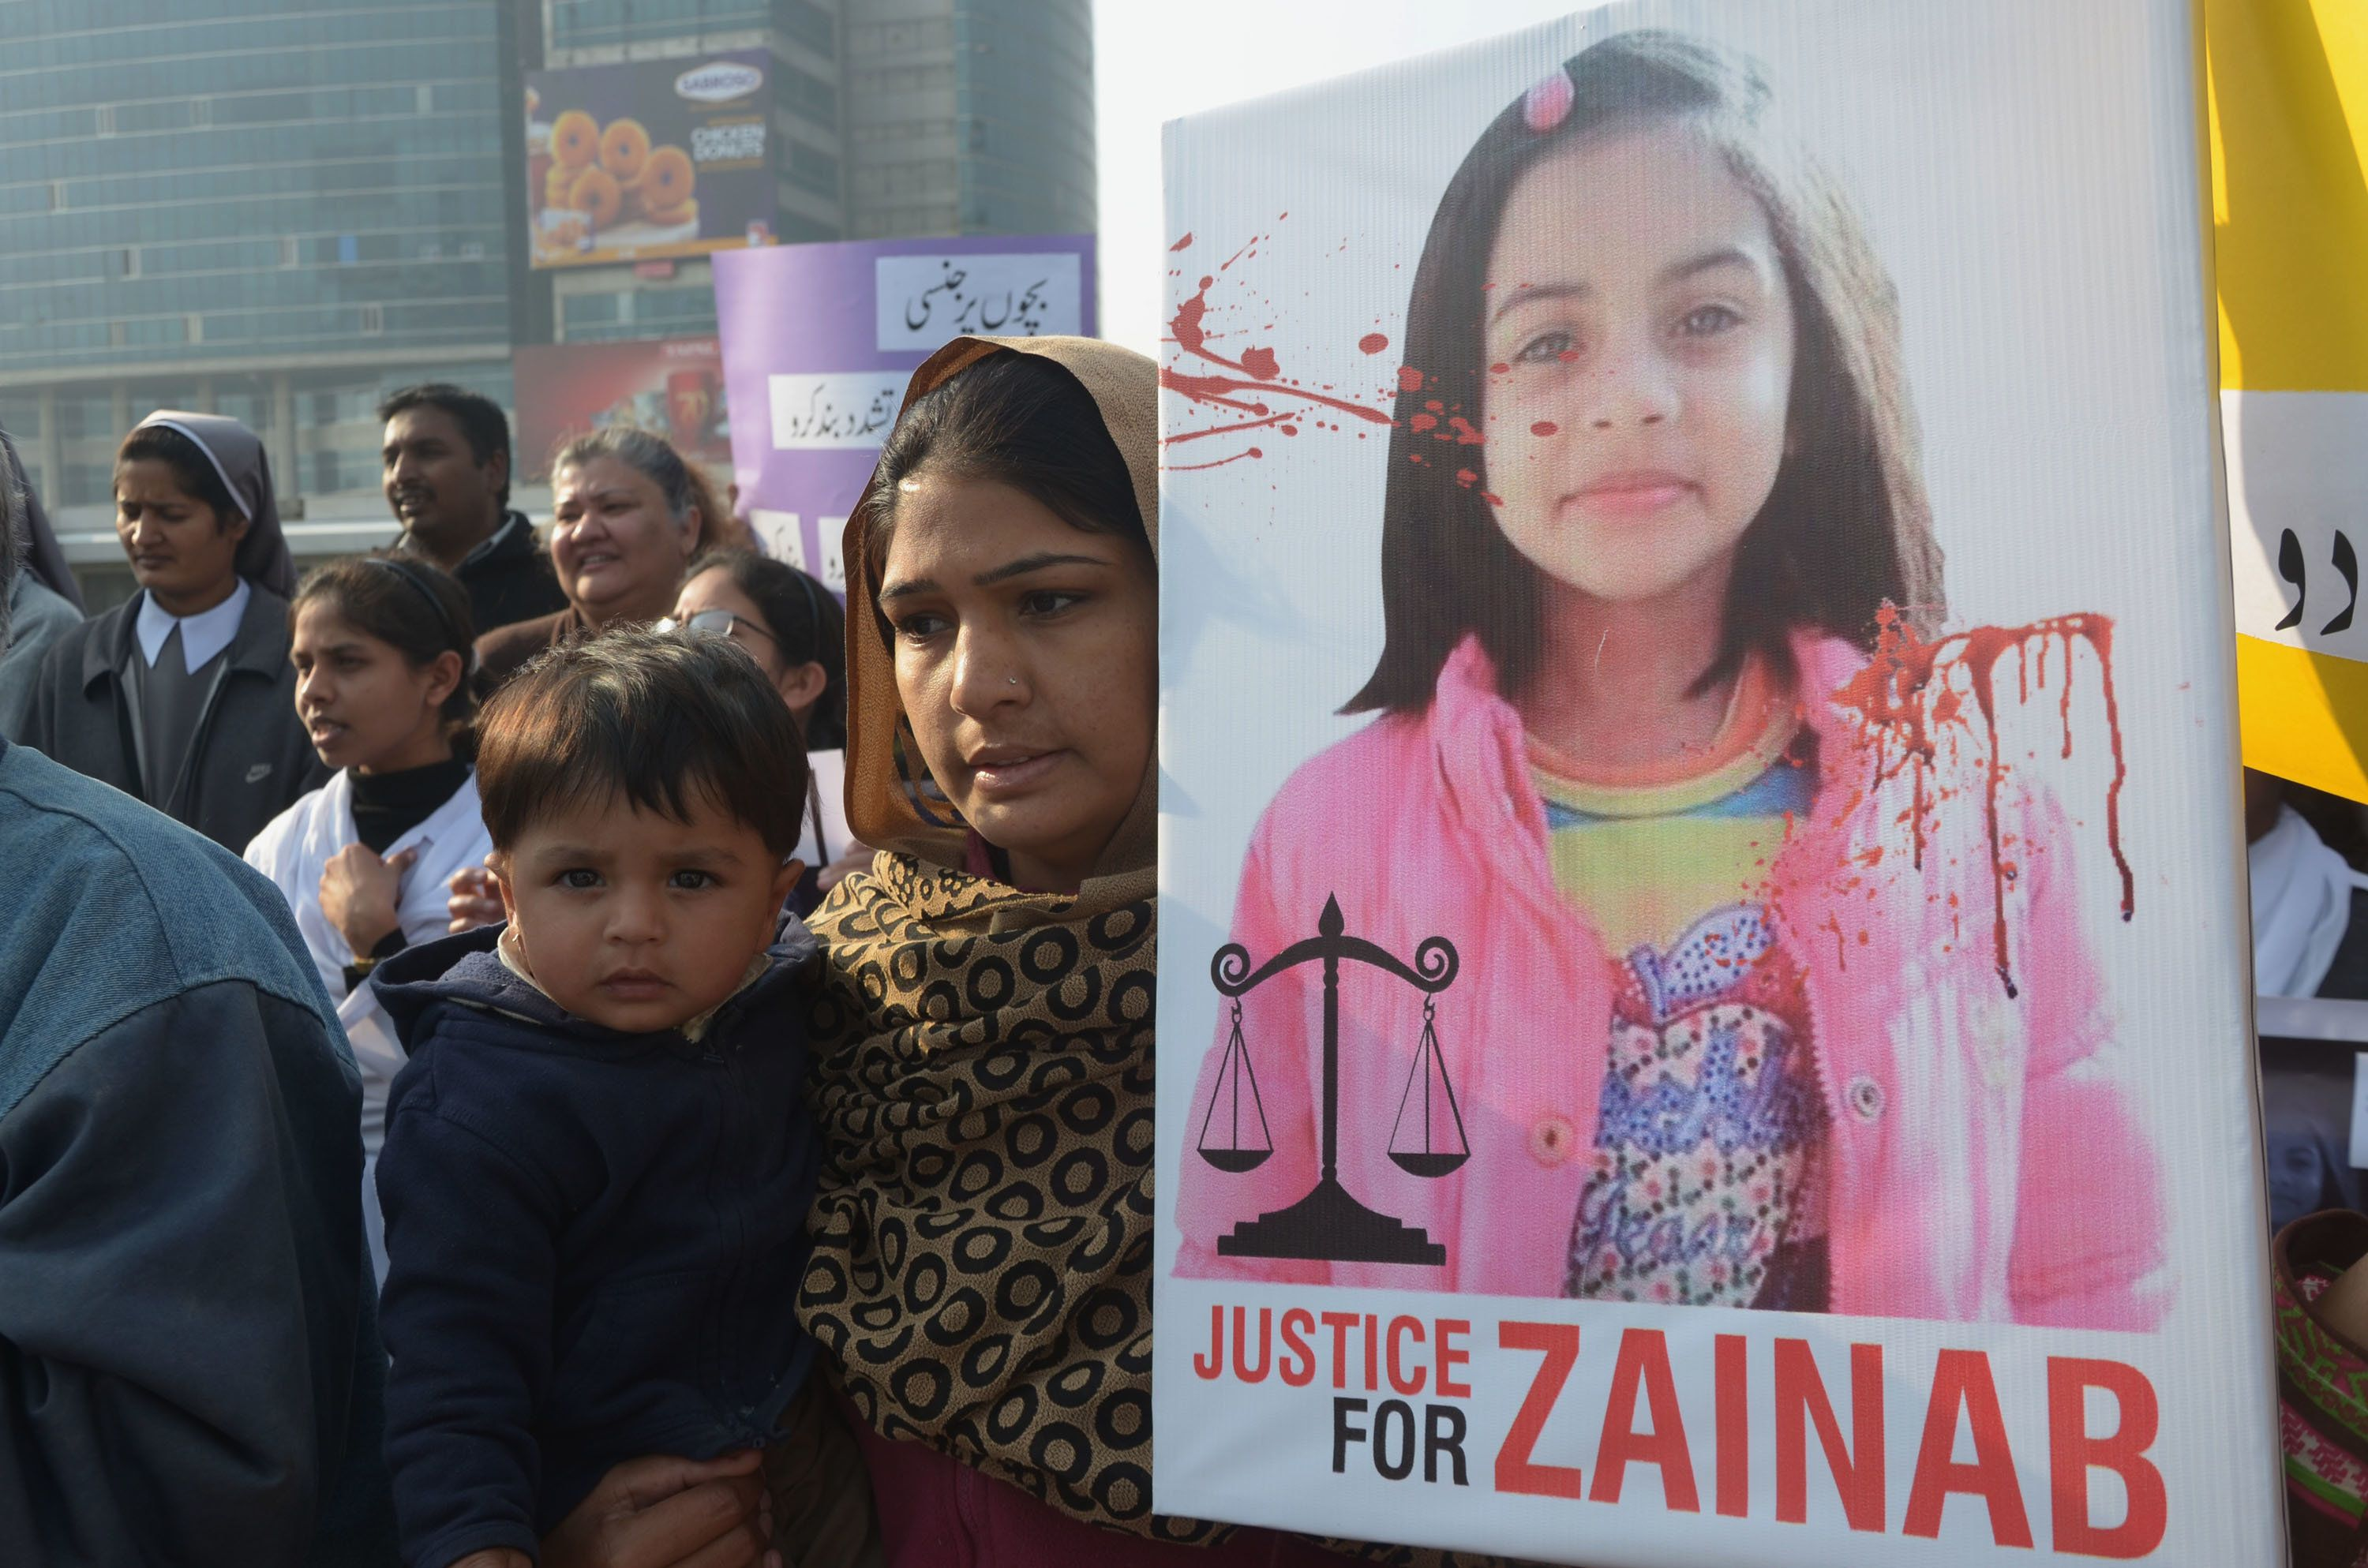 LAHORE, PUNJAB, PAKISTAN - 2018/01/14: Pakistani Activists of Cecil Chaudhry and Iris Foundation (CCIF) holding placards chant slogans to protest the rape and murder of seven year old Zainab Ansari in Kasur District at Liberty Chowk in Lahore on January 14, 2018. Hundreds of protesters enraged over the murder of a young girl threw stones at government buildings in a Pakistani city near the Indian border for a second day January 11, amid growing outrage over the killing. (Photo by Rana Sajid Hussain/Pacific Press/LightRocket via Getty Images)